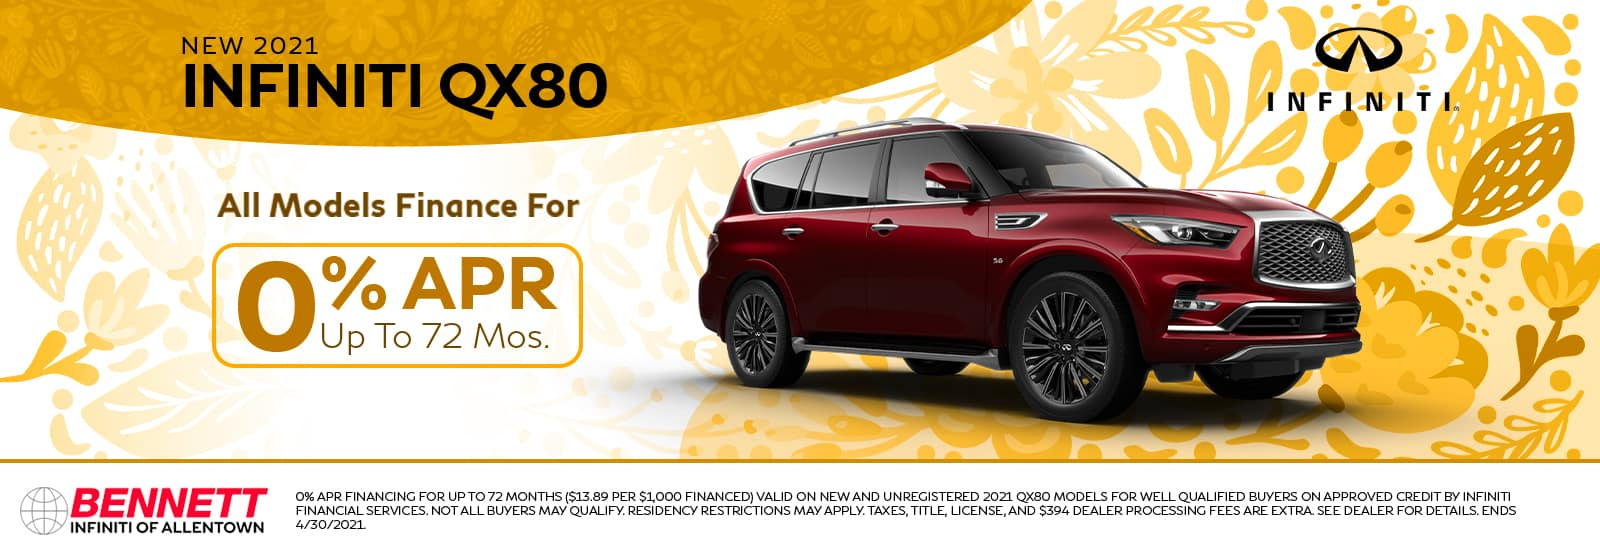 New 2021 INFINITI QX80 - All models finance for 0% APR up to 72 months.